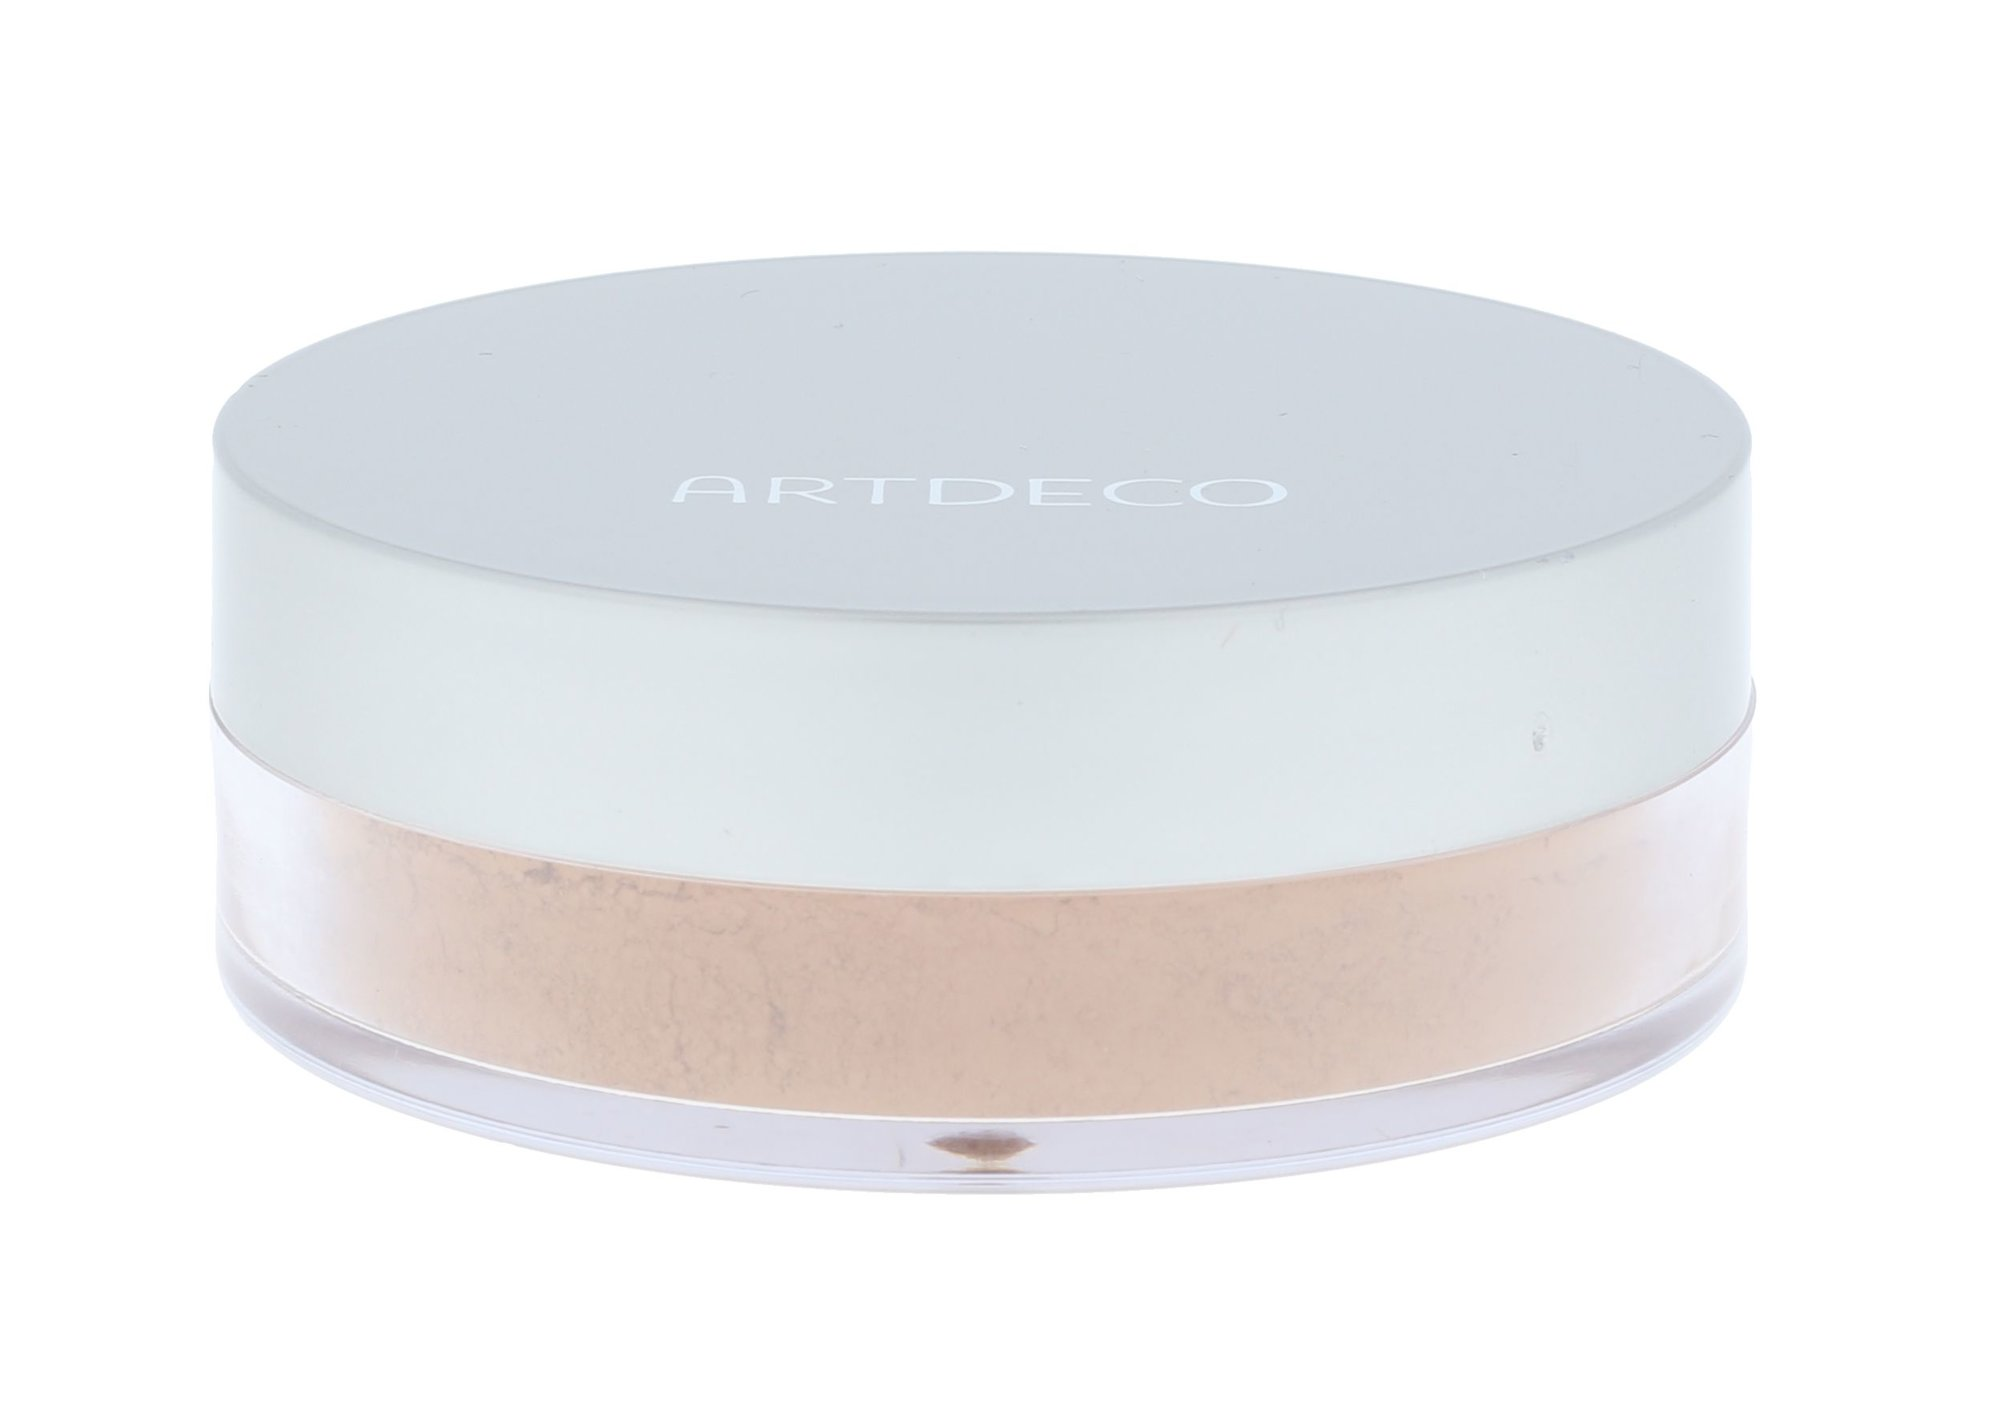 Artdeco Pure Minerals Cosmetic 15ml 2 Natural beige